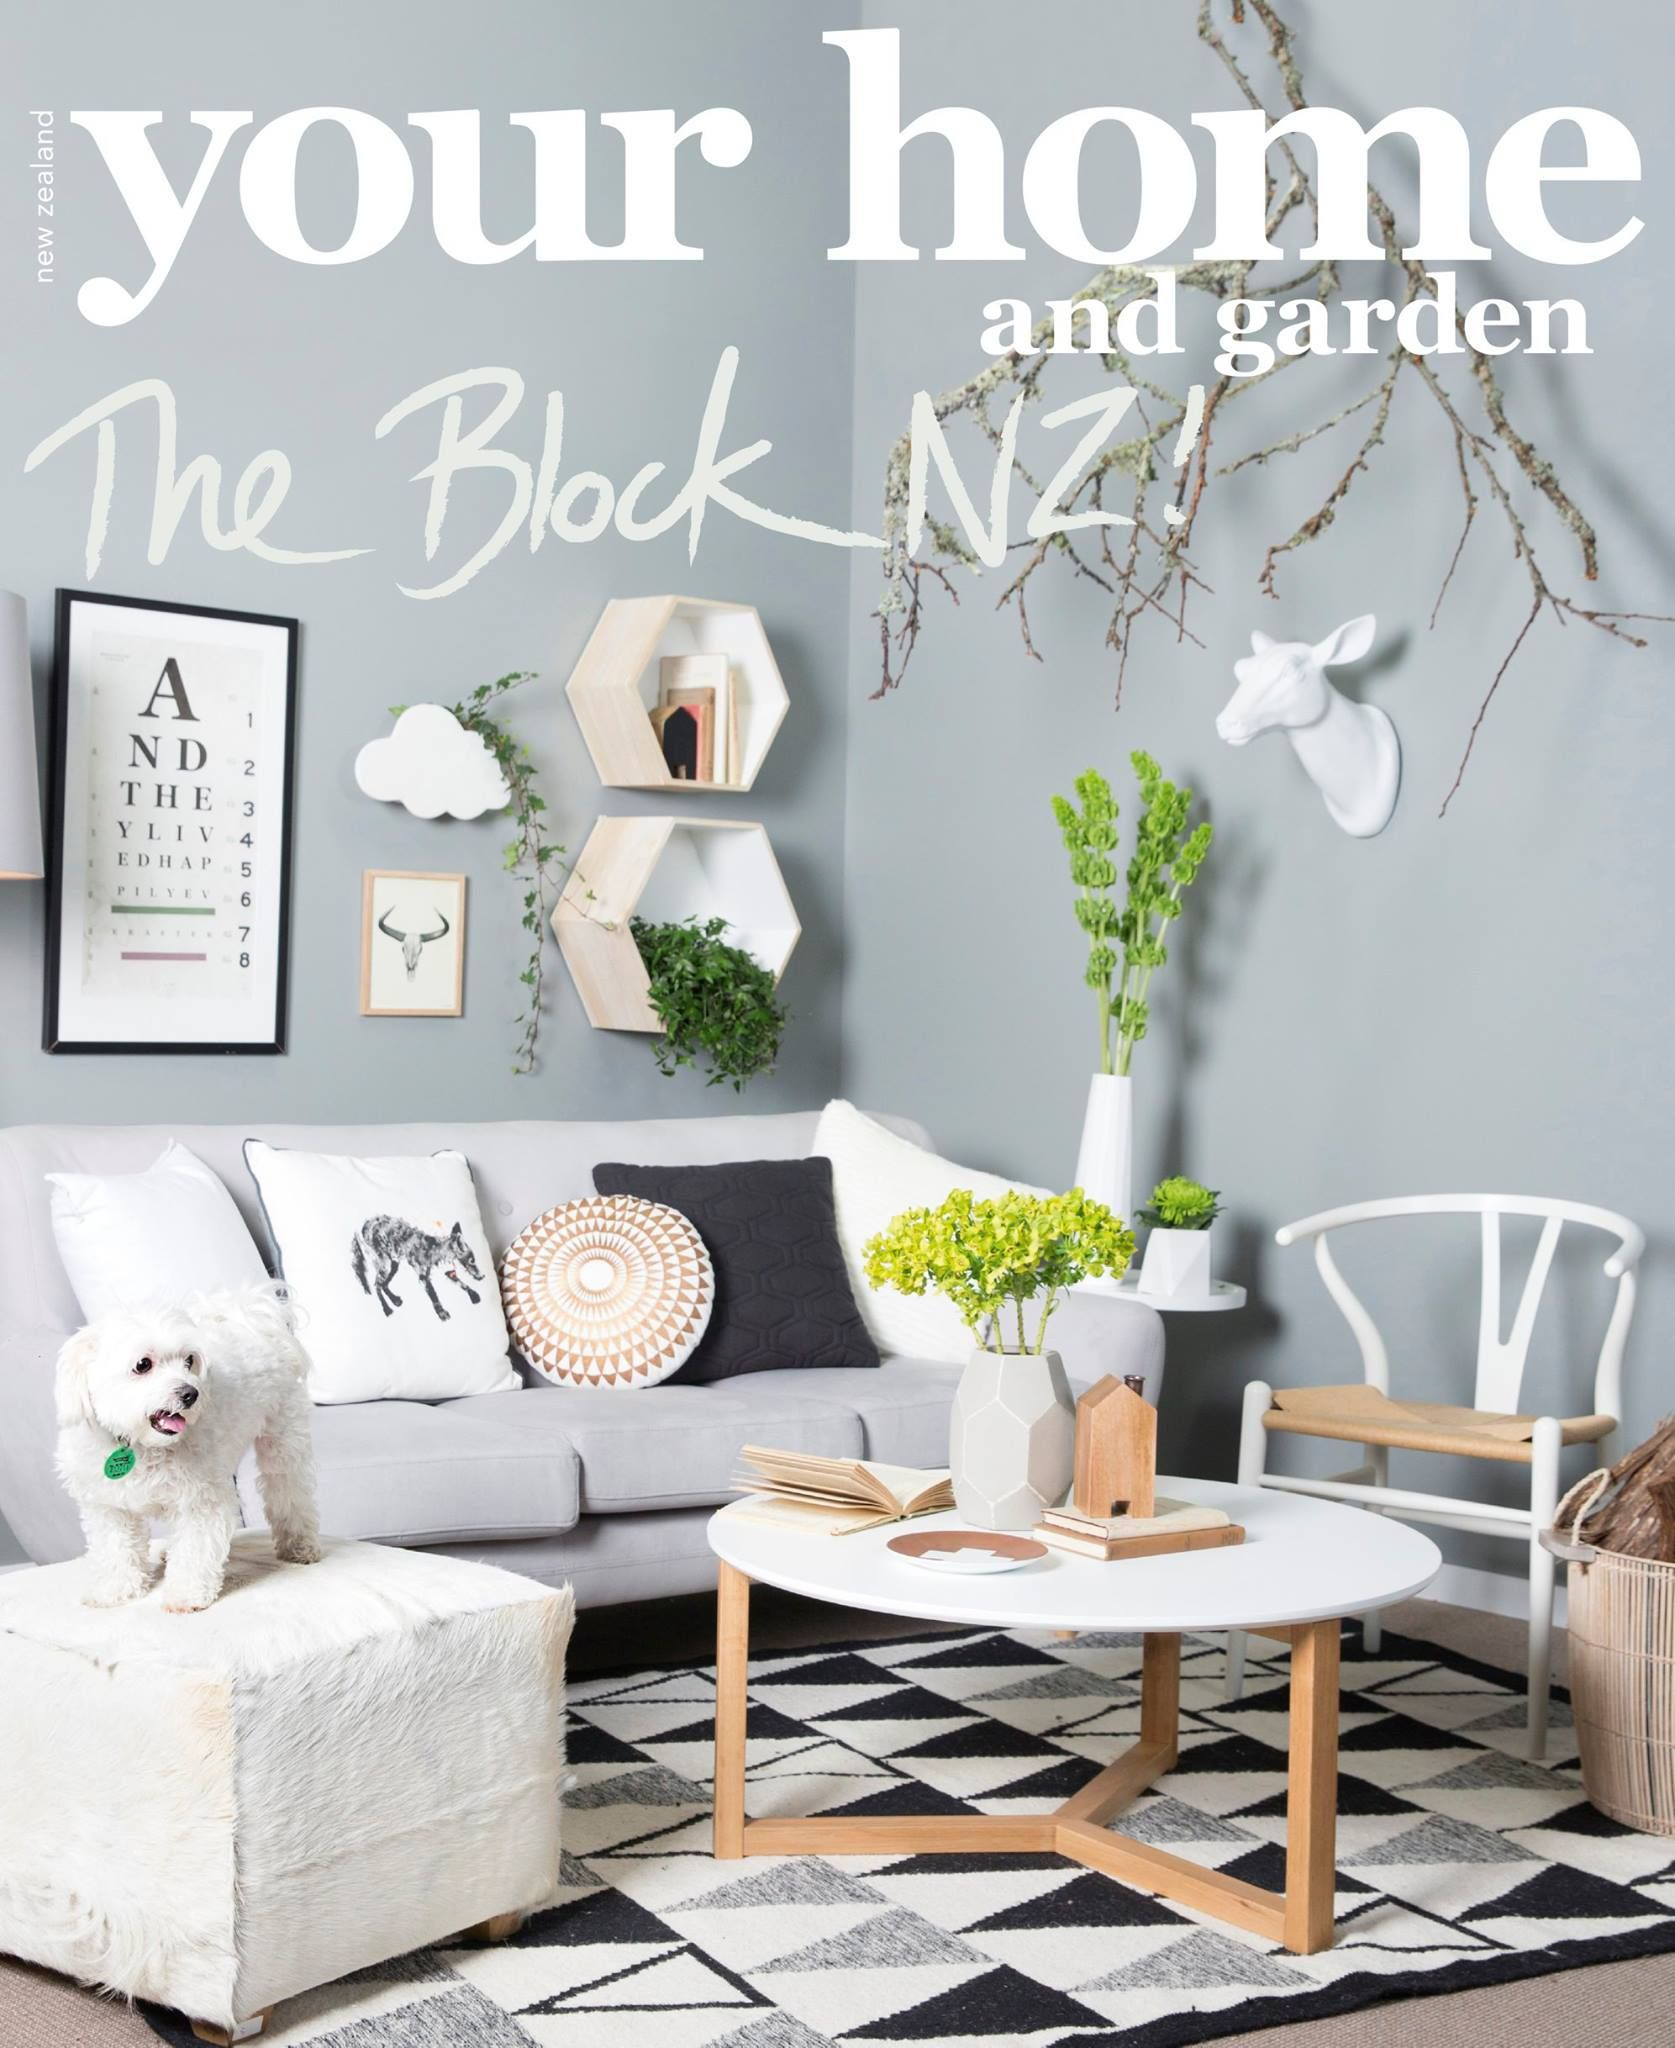 deer print sofa covers how to make a sectional slipcover jo and damo 39s 39new nordic 39 your home garden magazine